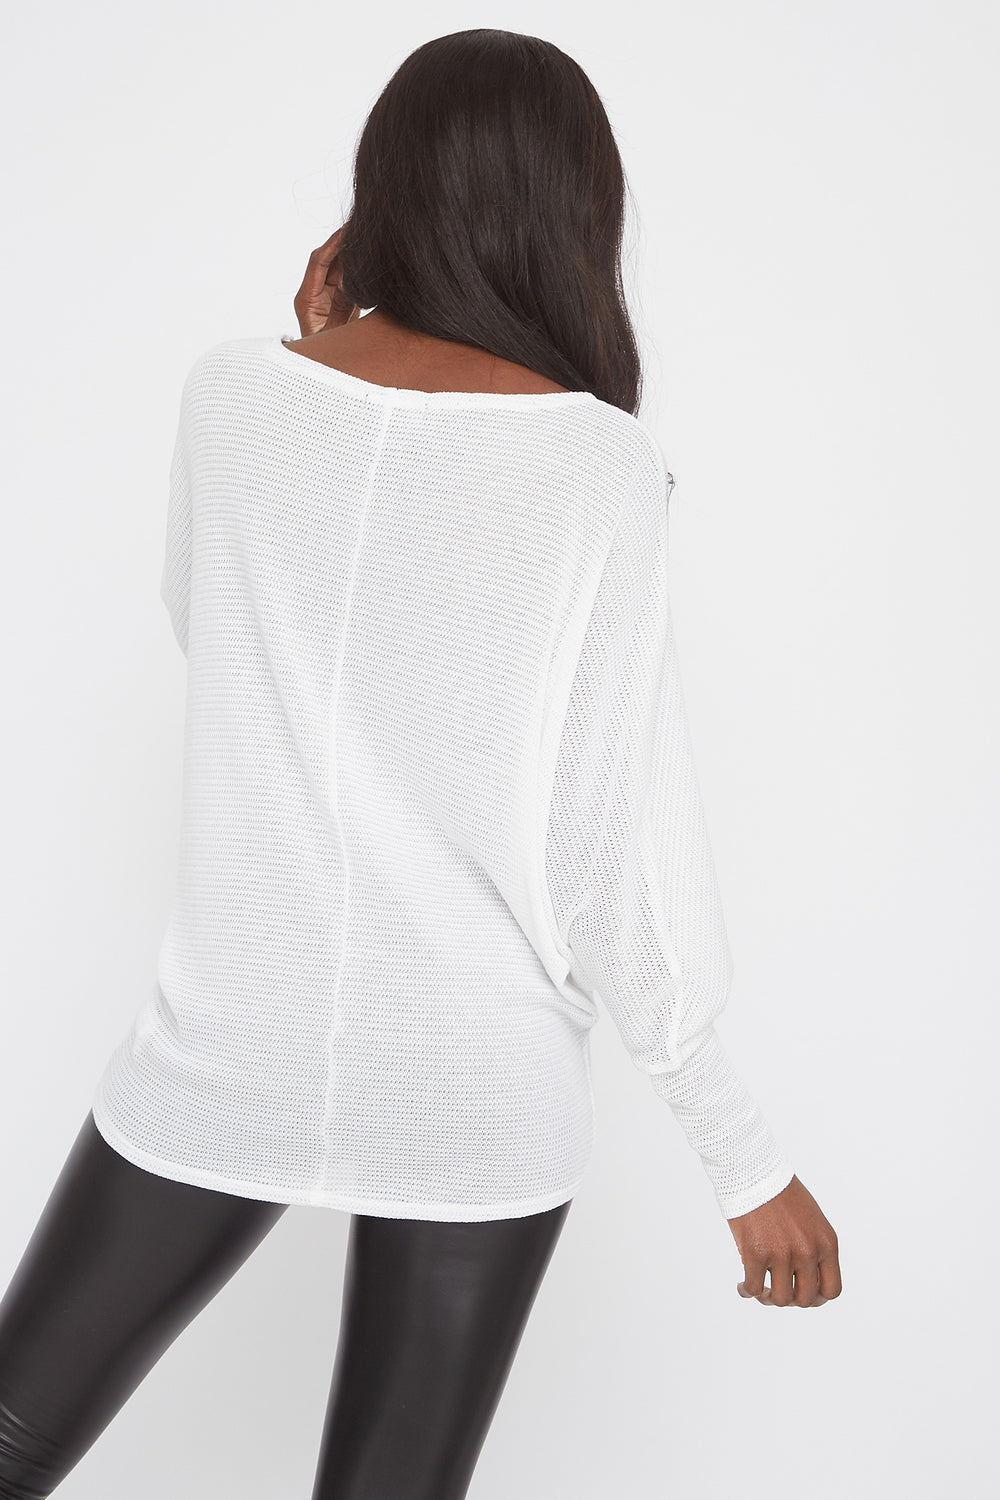 Waffle Knit Off The Shoulder Dolman Sleeve Sweater White